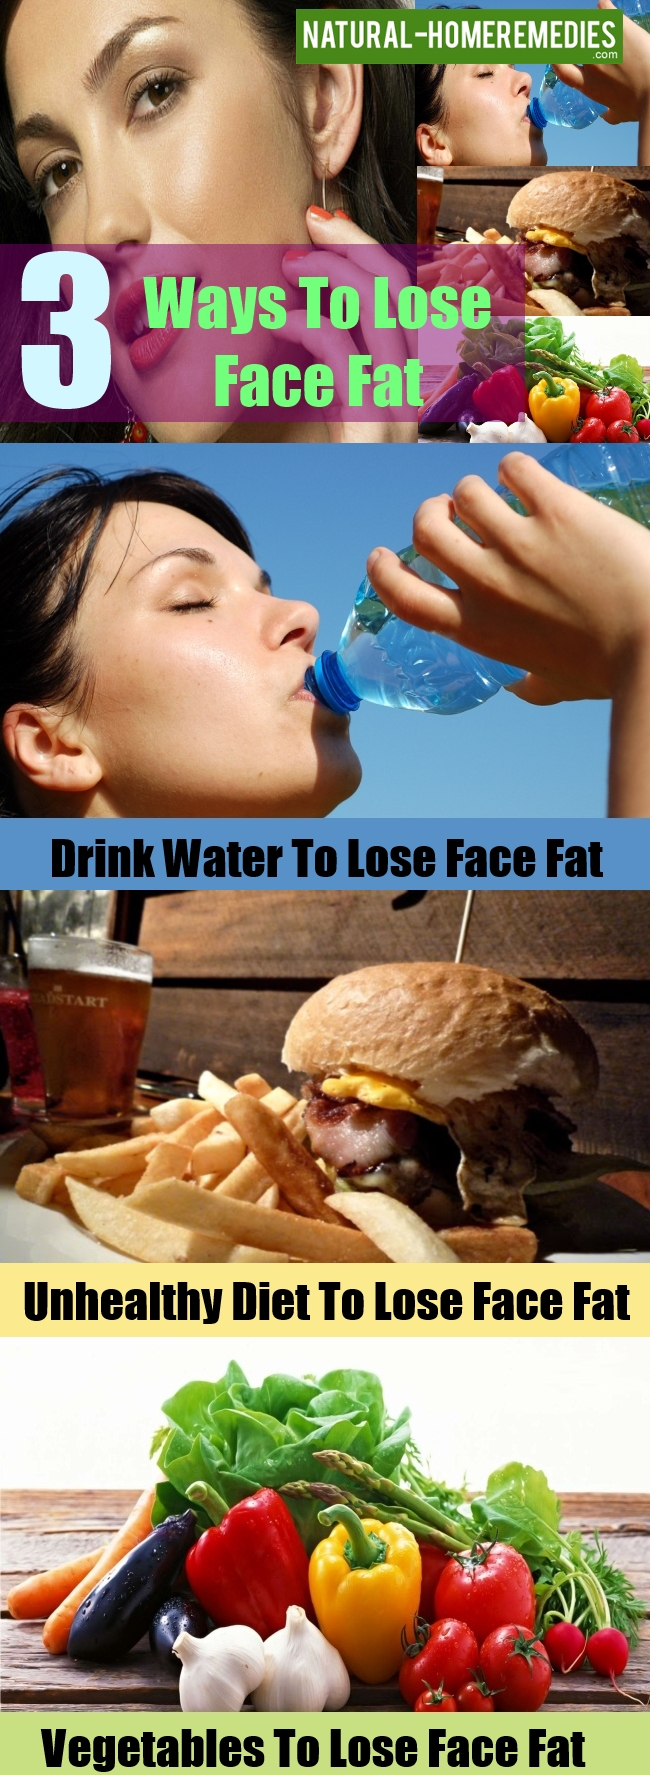 Ways To Lose Face Fat